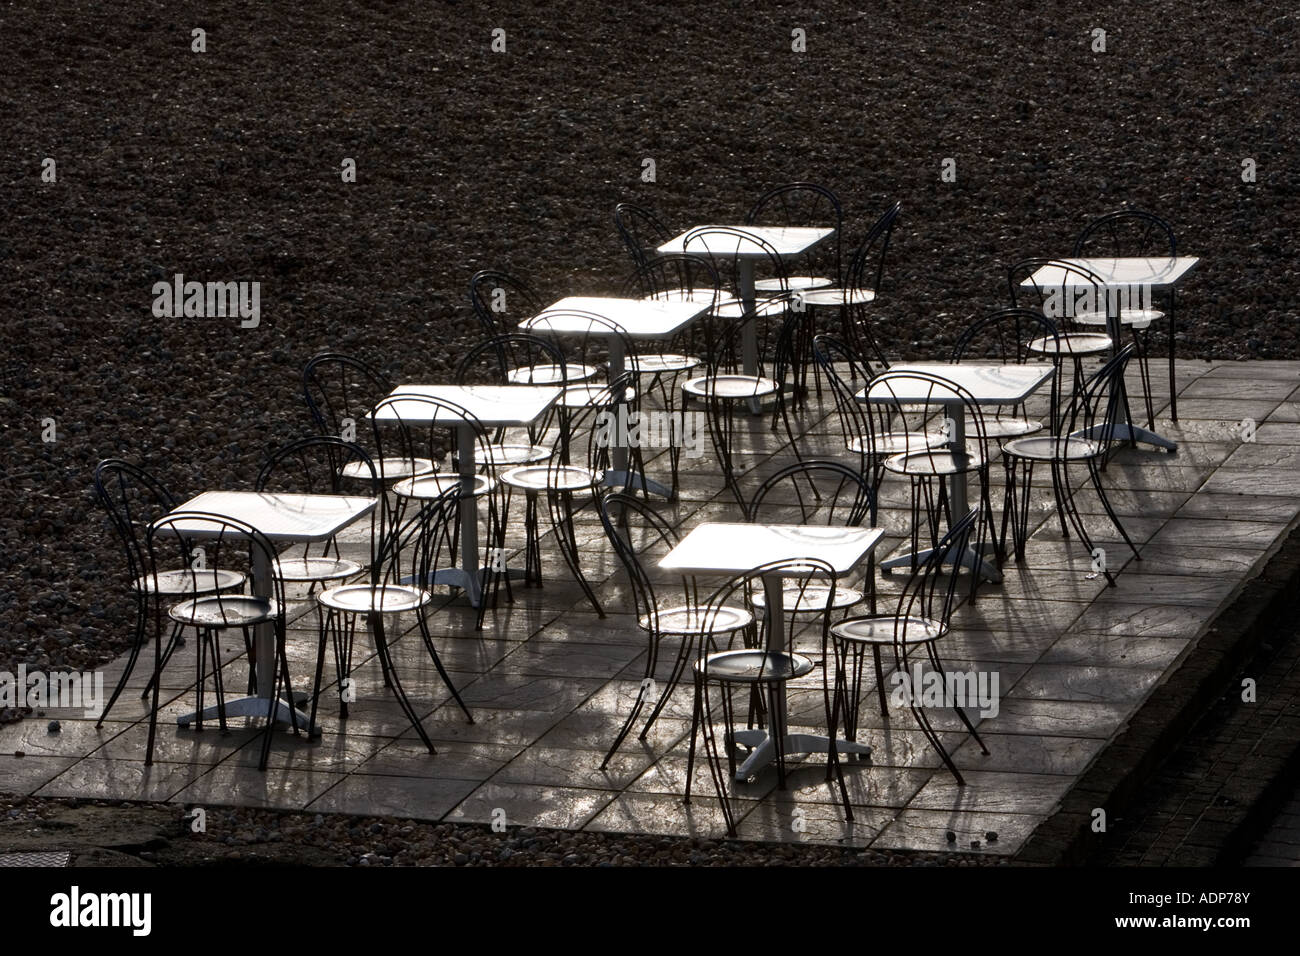 Deserted tables and chairs out of season on Brighton beach South Coast England United Kingdom - Stock Image